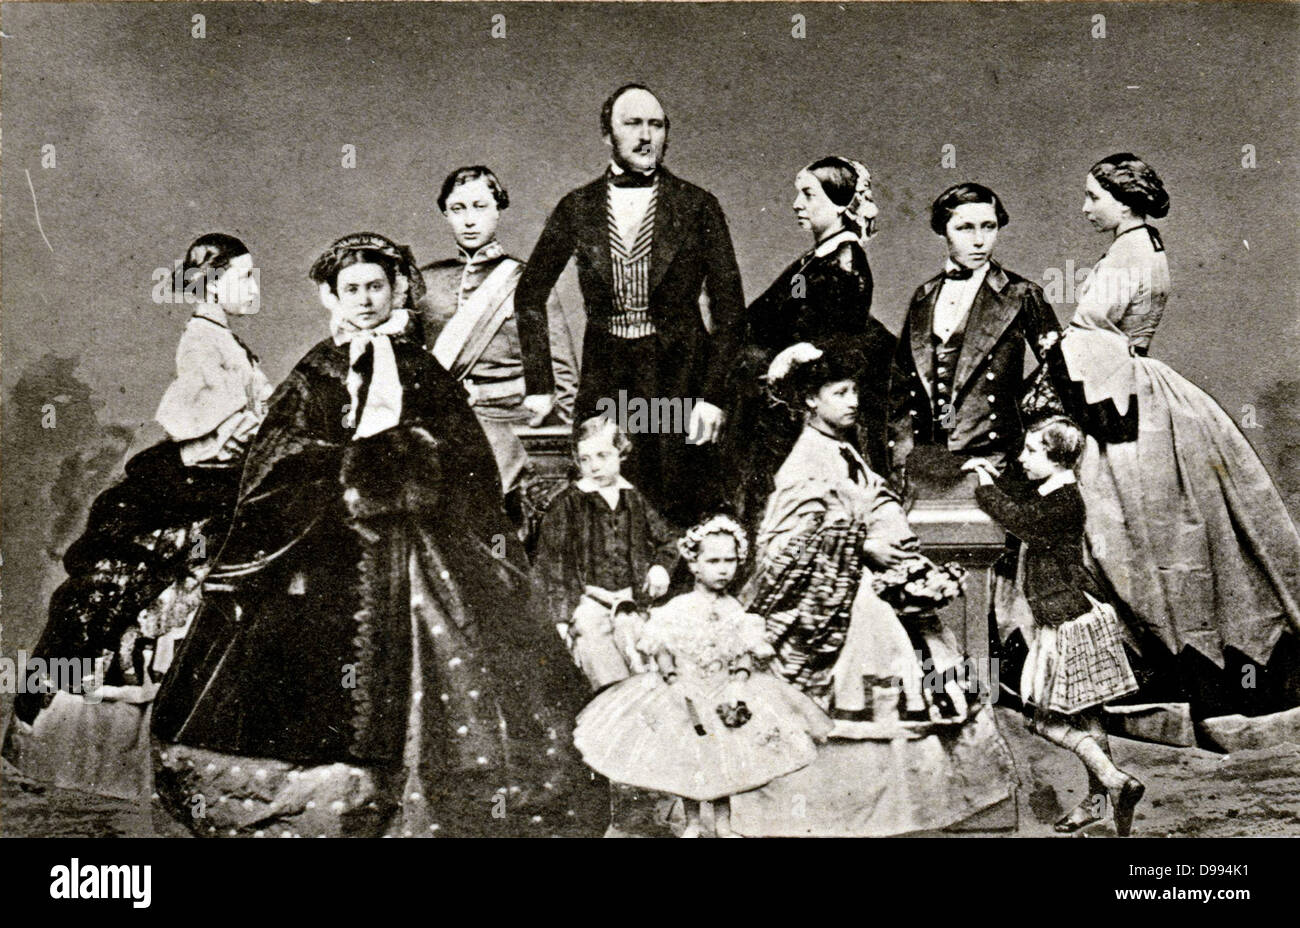 Prince Albert (Prince Consort) with Queen Victory and their Children. - Stock Image